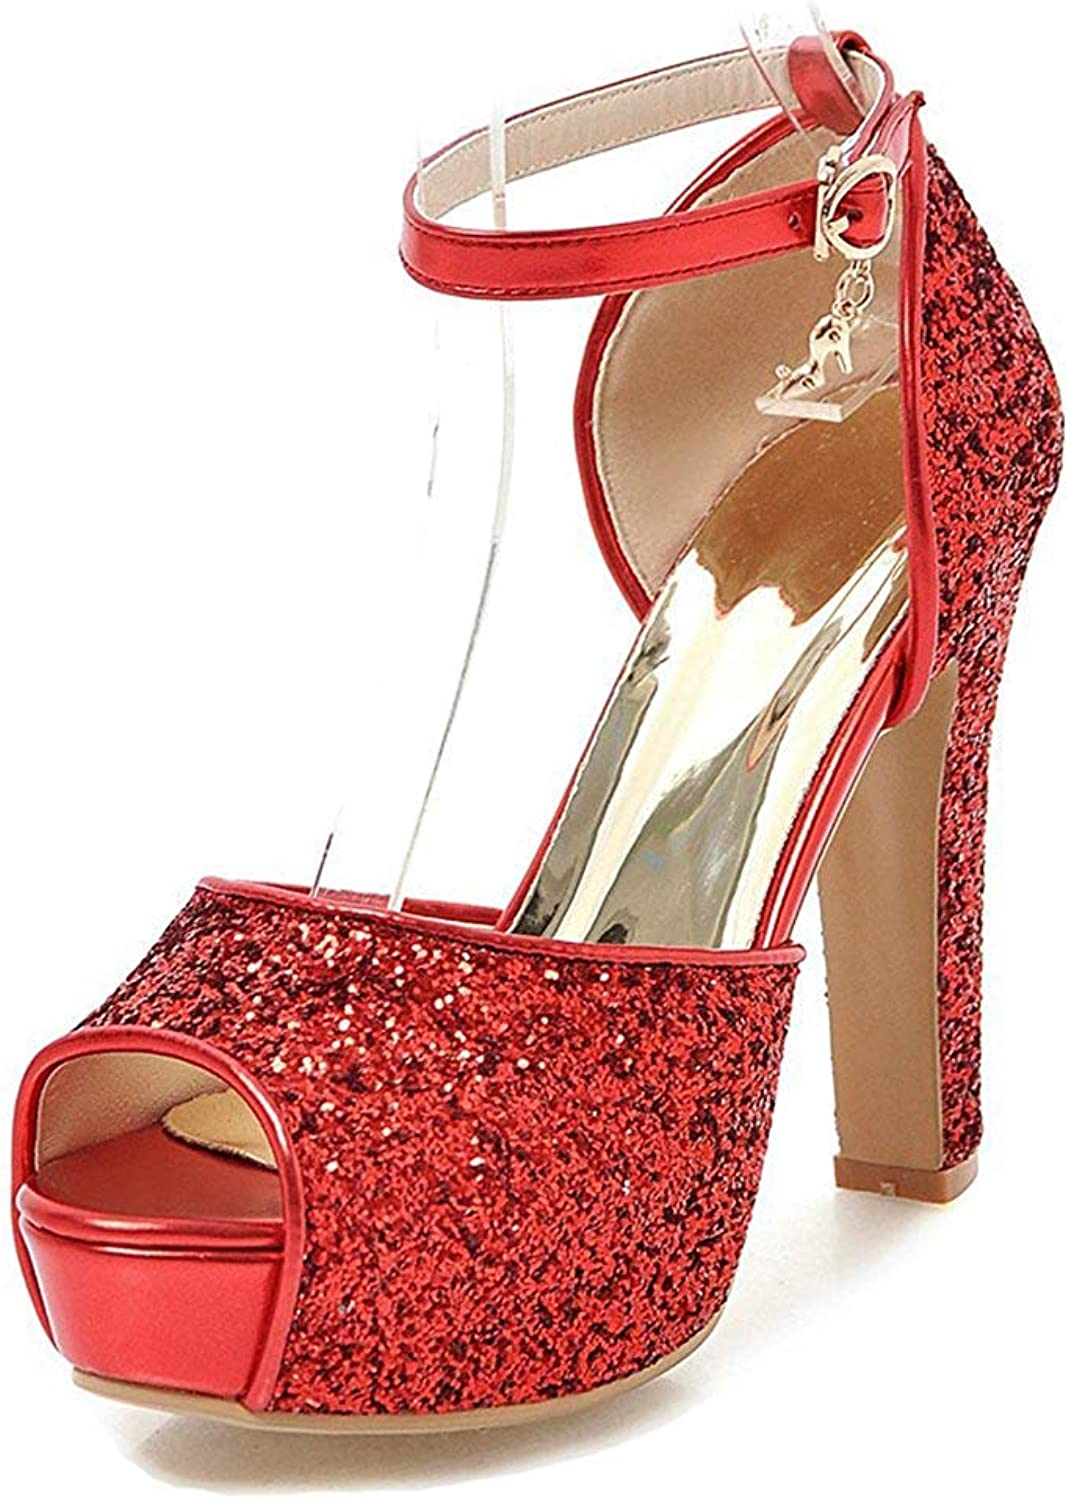 Unm Women's Platform Sandals with Ankle Strap - Peep Toe Buckled High Heel - Chunky Glitter Sequins